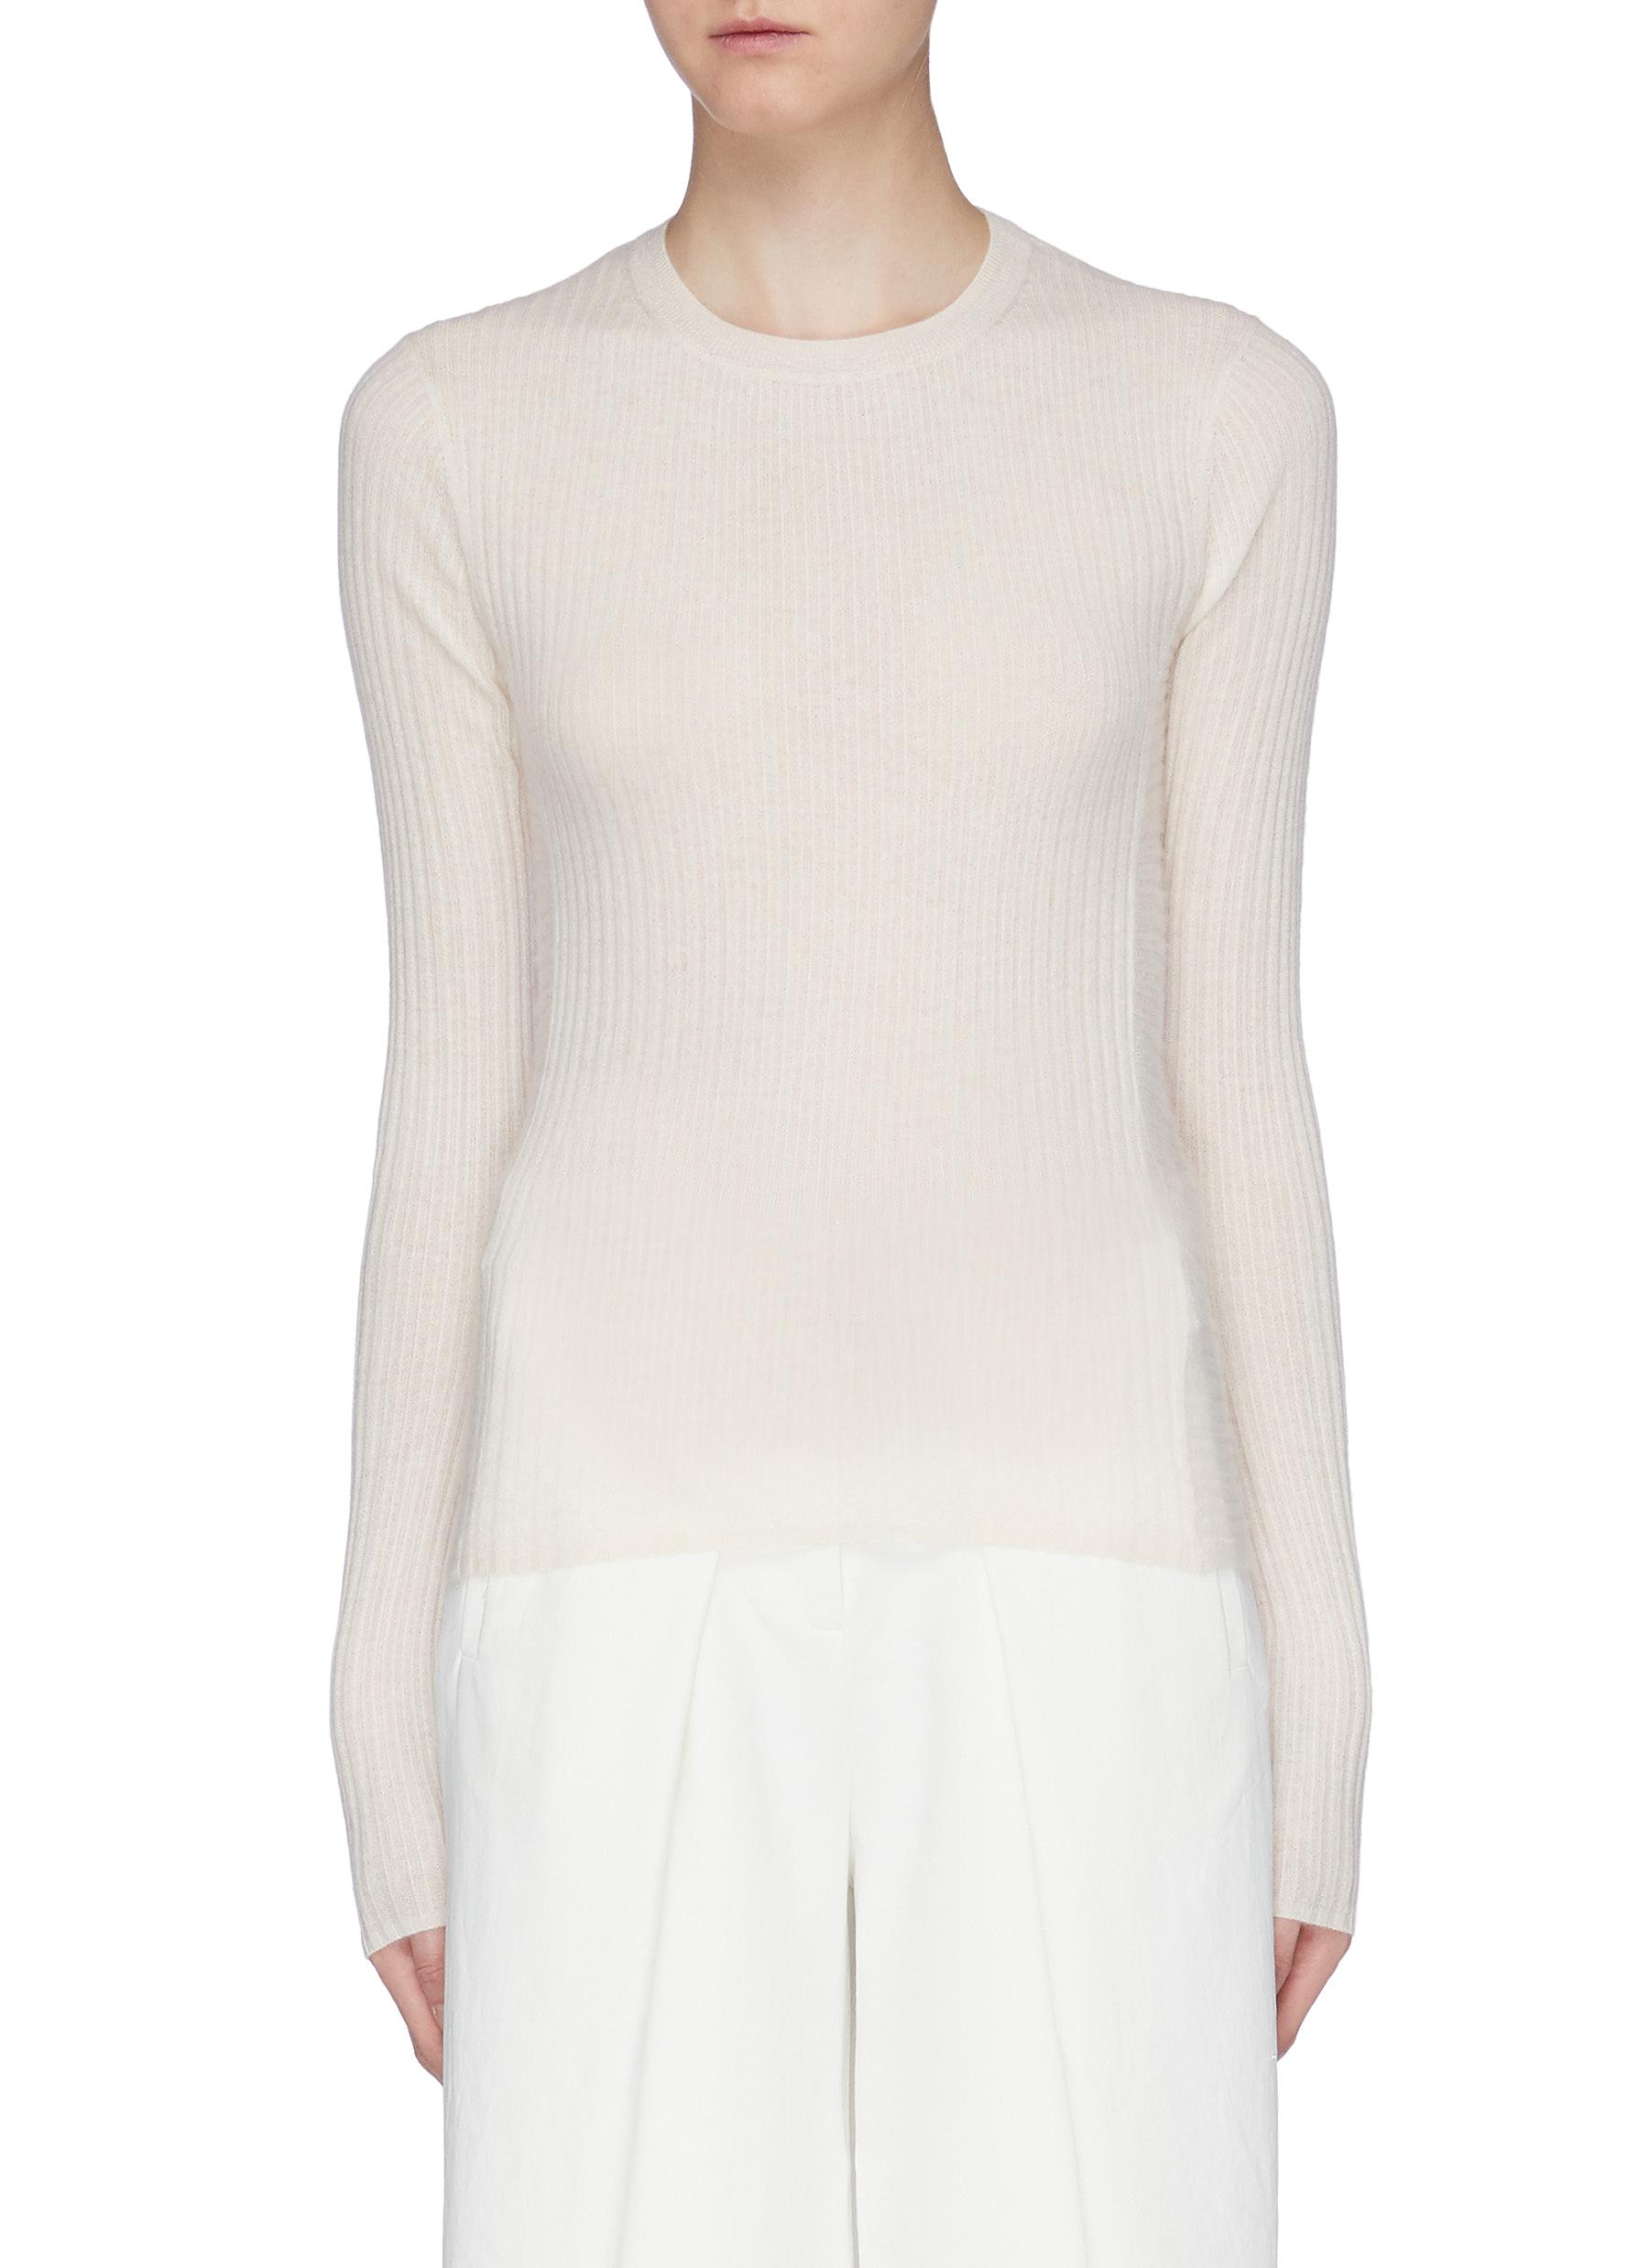 Directional rib knit cashmere sweater by Vince